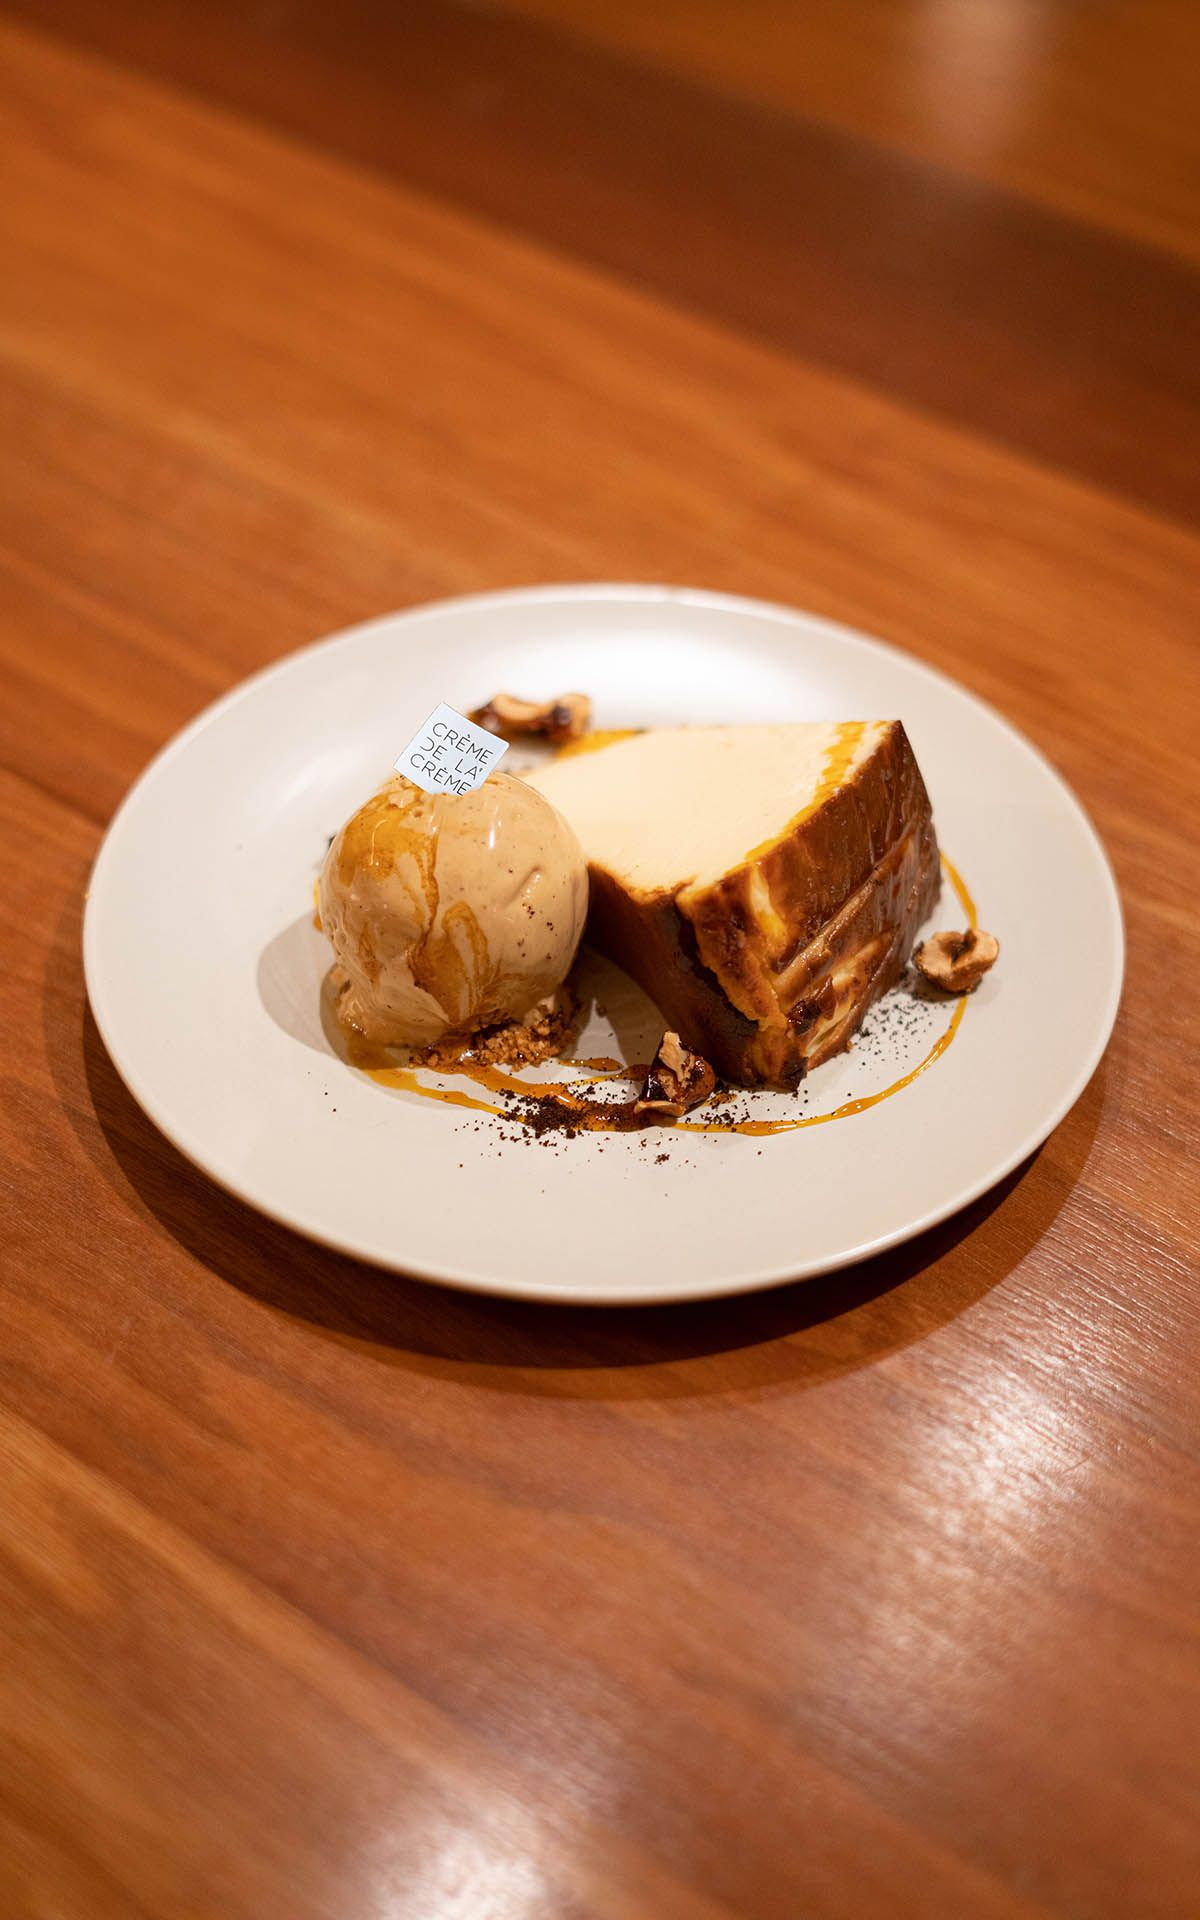 Try This: Burnt Cheesecake Ice Cream By The Tokyo Restaurant & Crème De La Crème